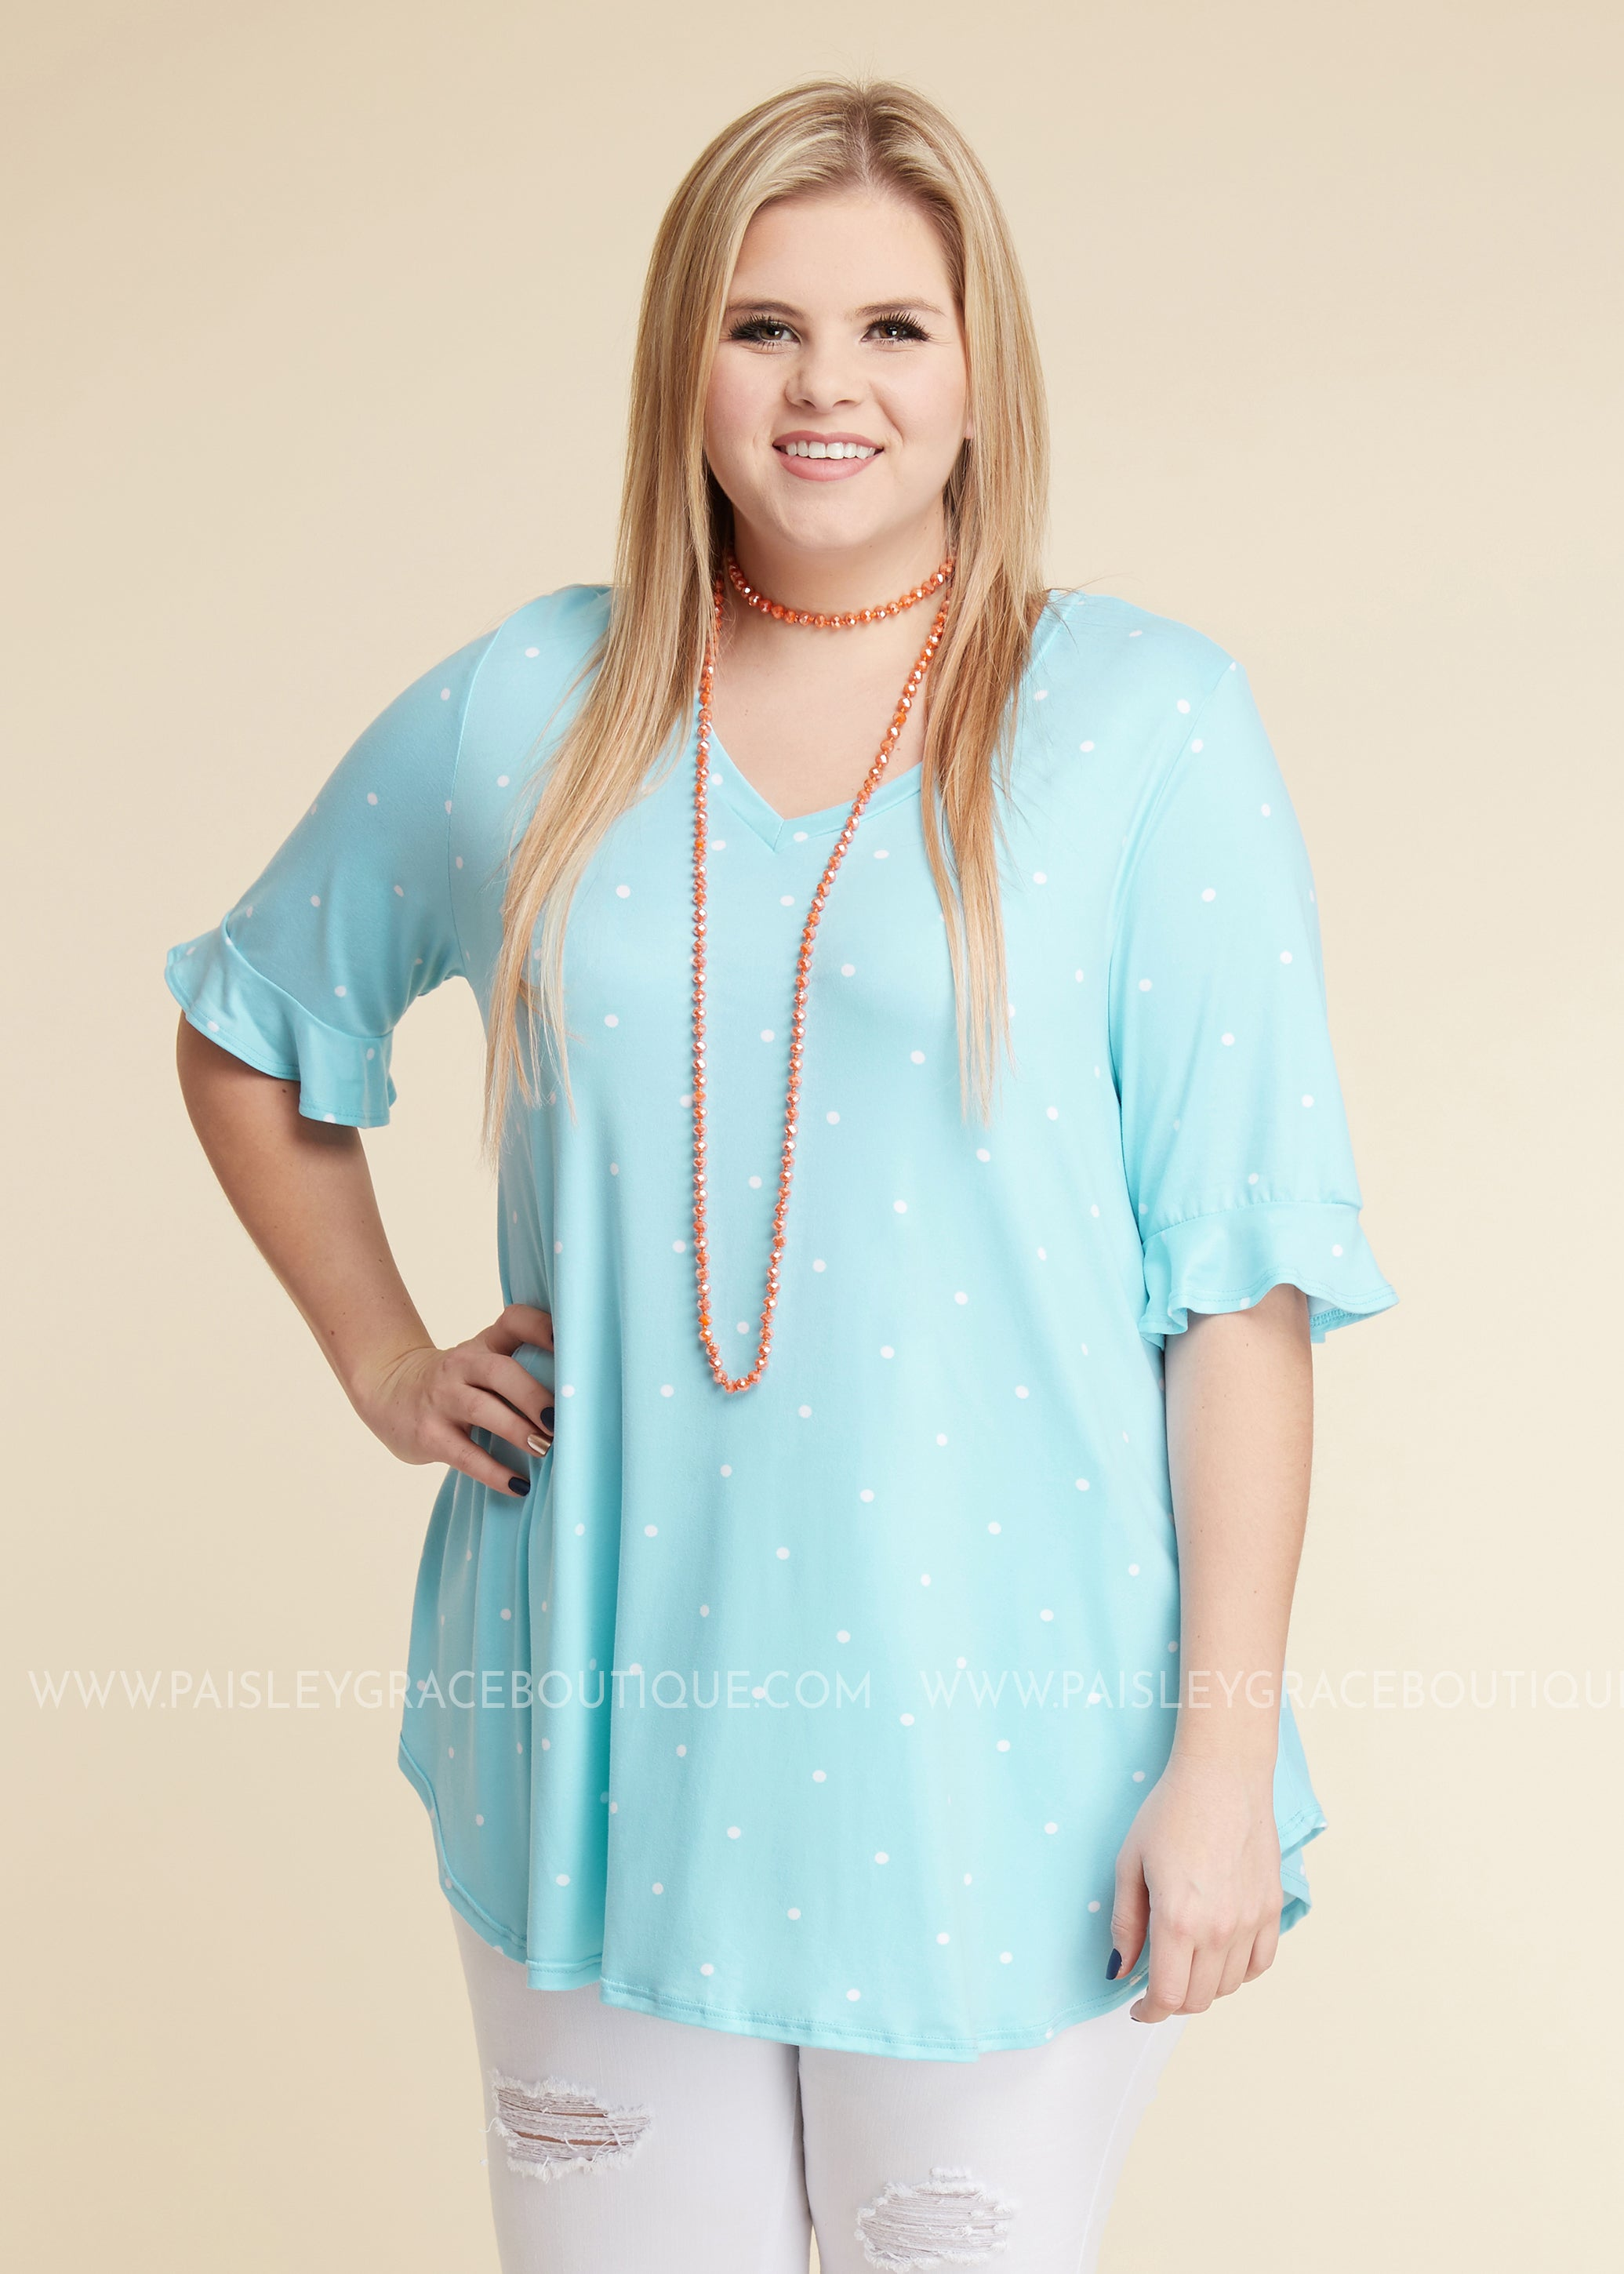 Kennedy Polka Dot Top- SKY BLUE - FINAL SALE